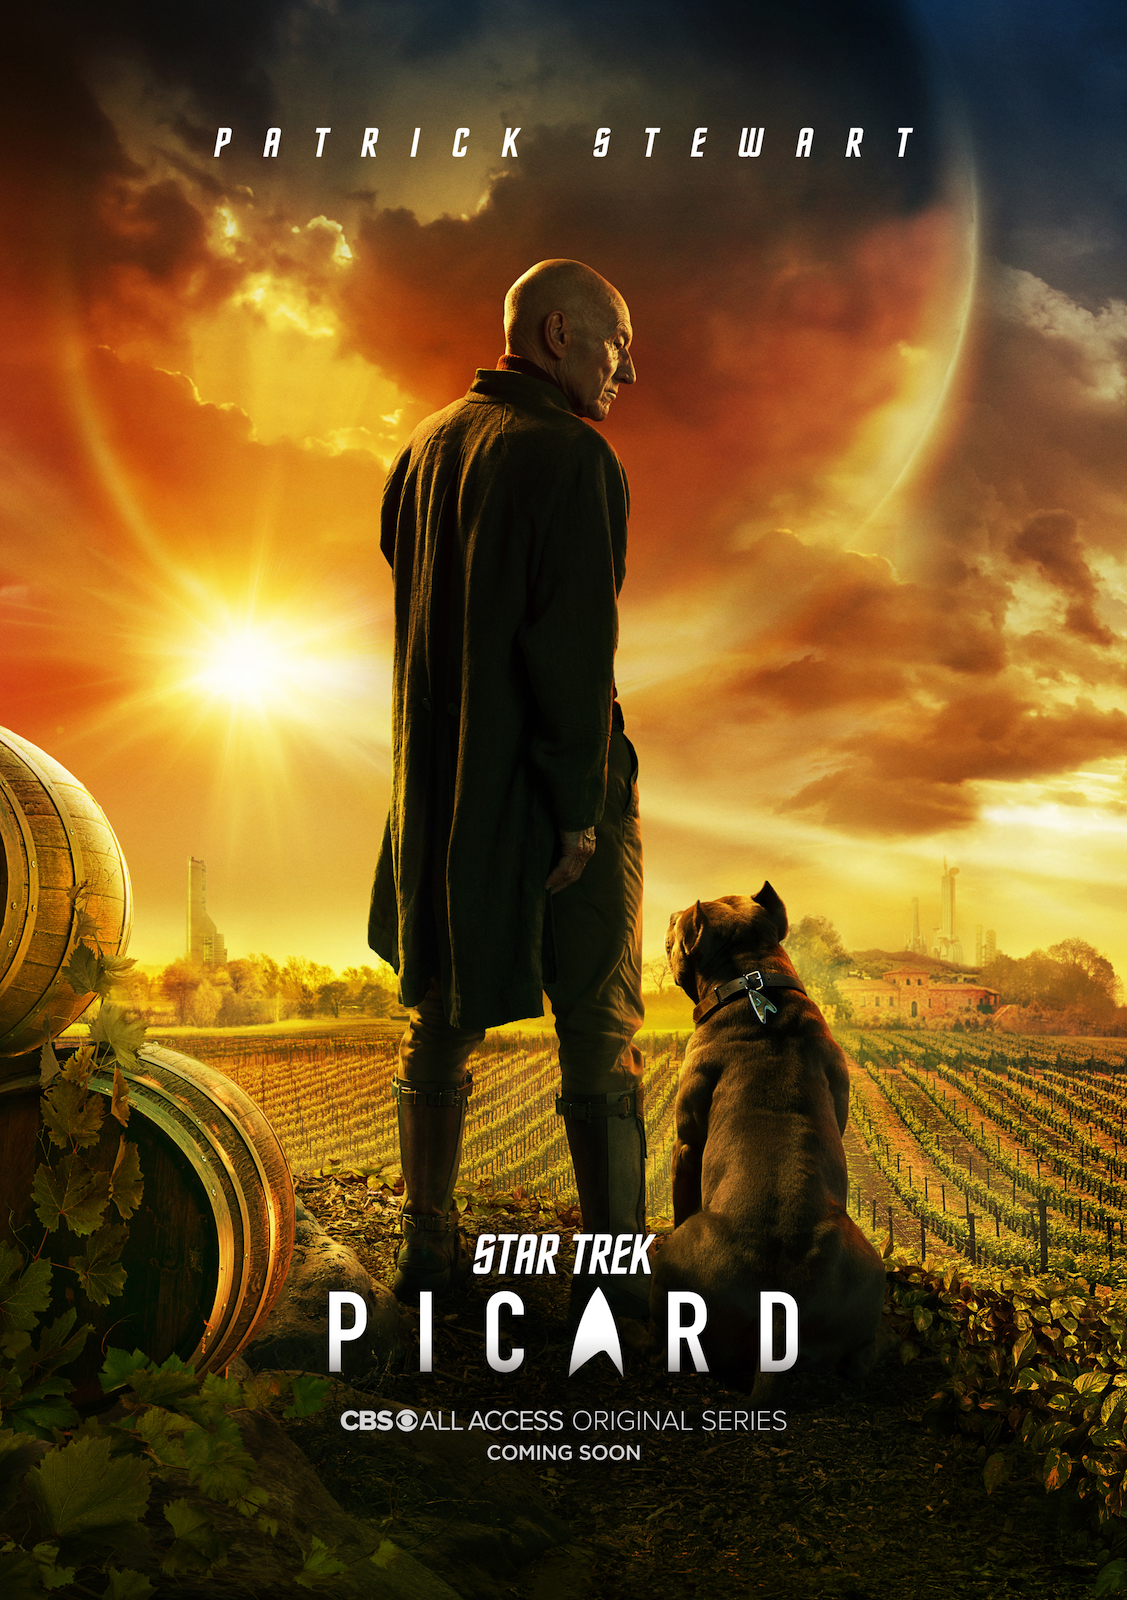 Amazon confirma presença de elenco das séries  The Boys, The Expanse e Star Trek: Picard na CCXP19 6